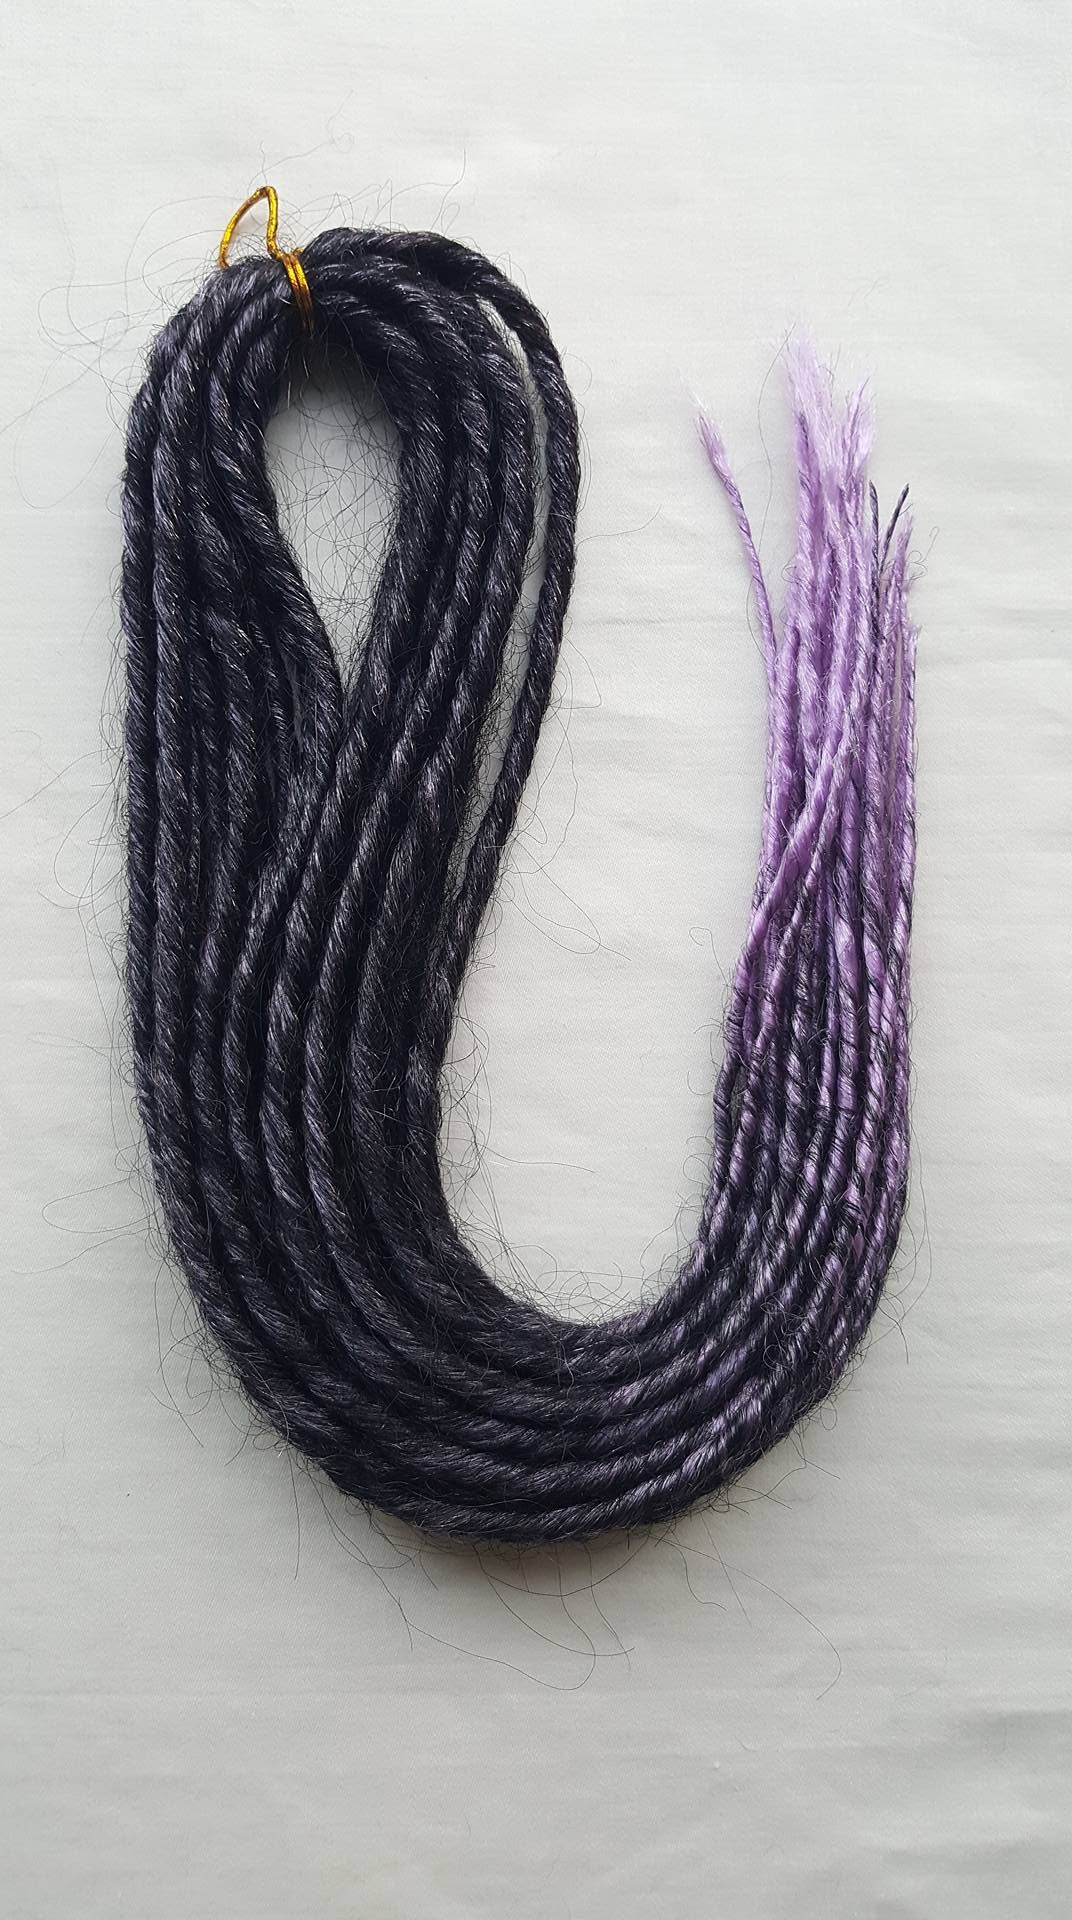 Elysee Star - Black-Purple Transitional Synthetic Dreadlocks (Double Ended) 100g